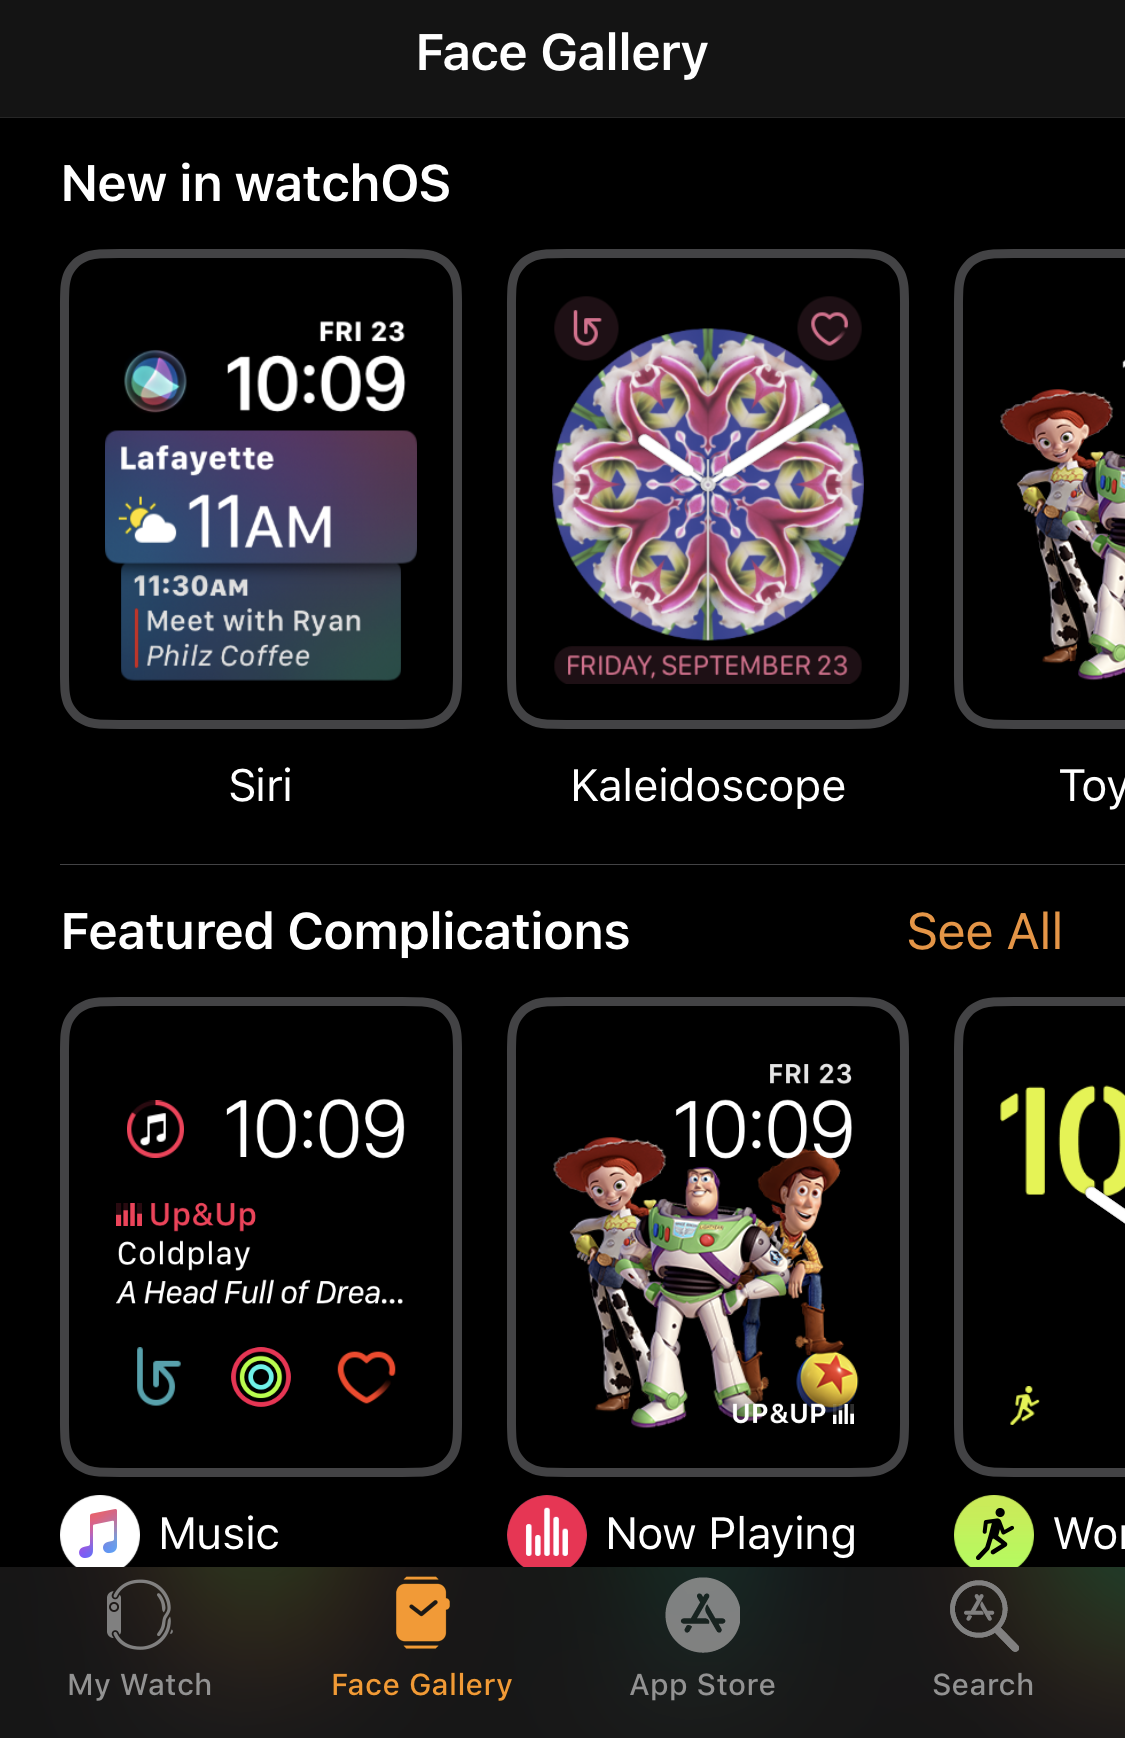 iphone apple watch face gallery